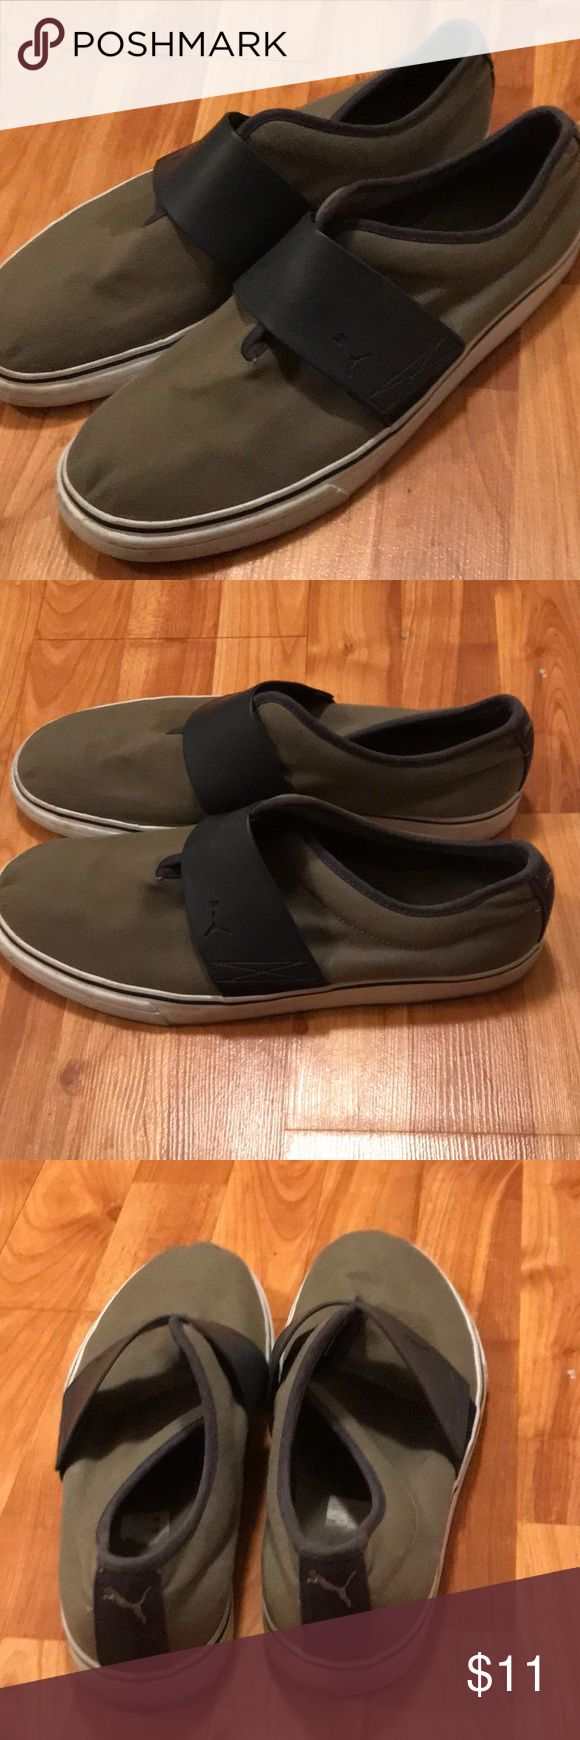 Olive Green Puma Shoes Olive Green/ Navy Blue Comfy Puma Slideon Shoes Puma Shoes Loafers & Slip-Ons